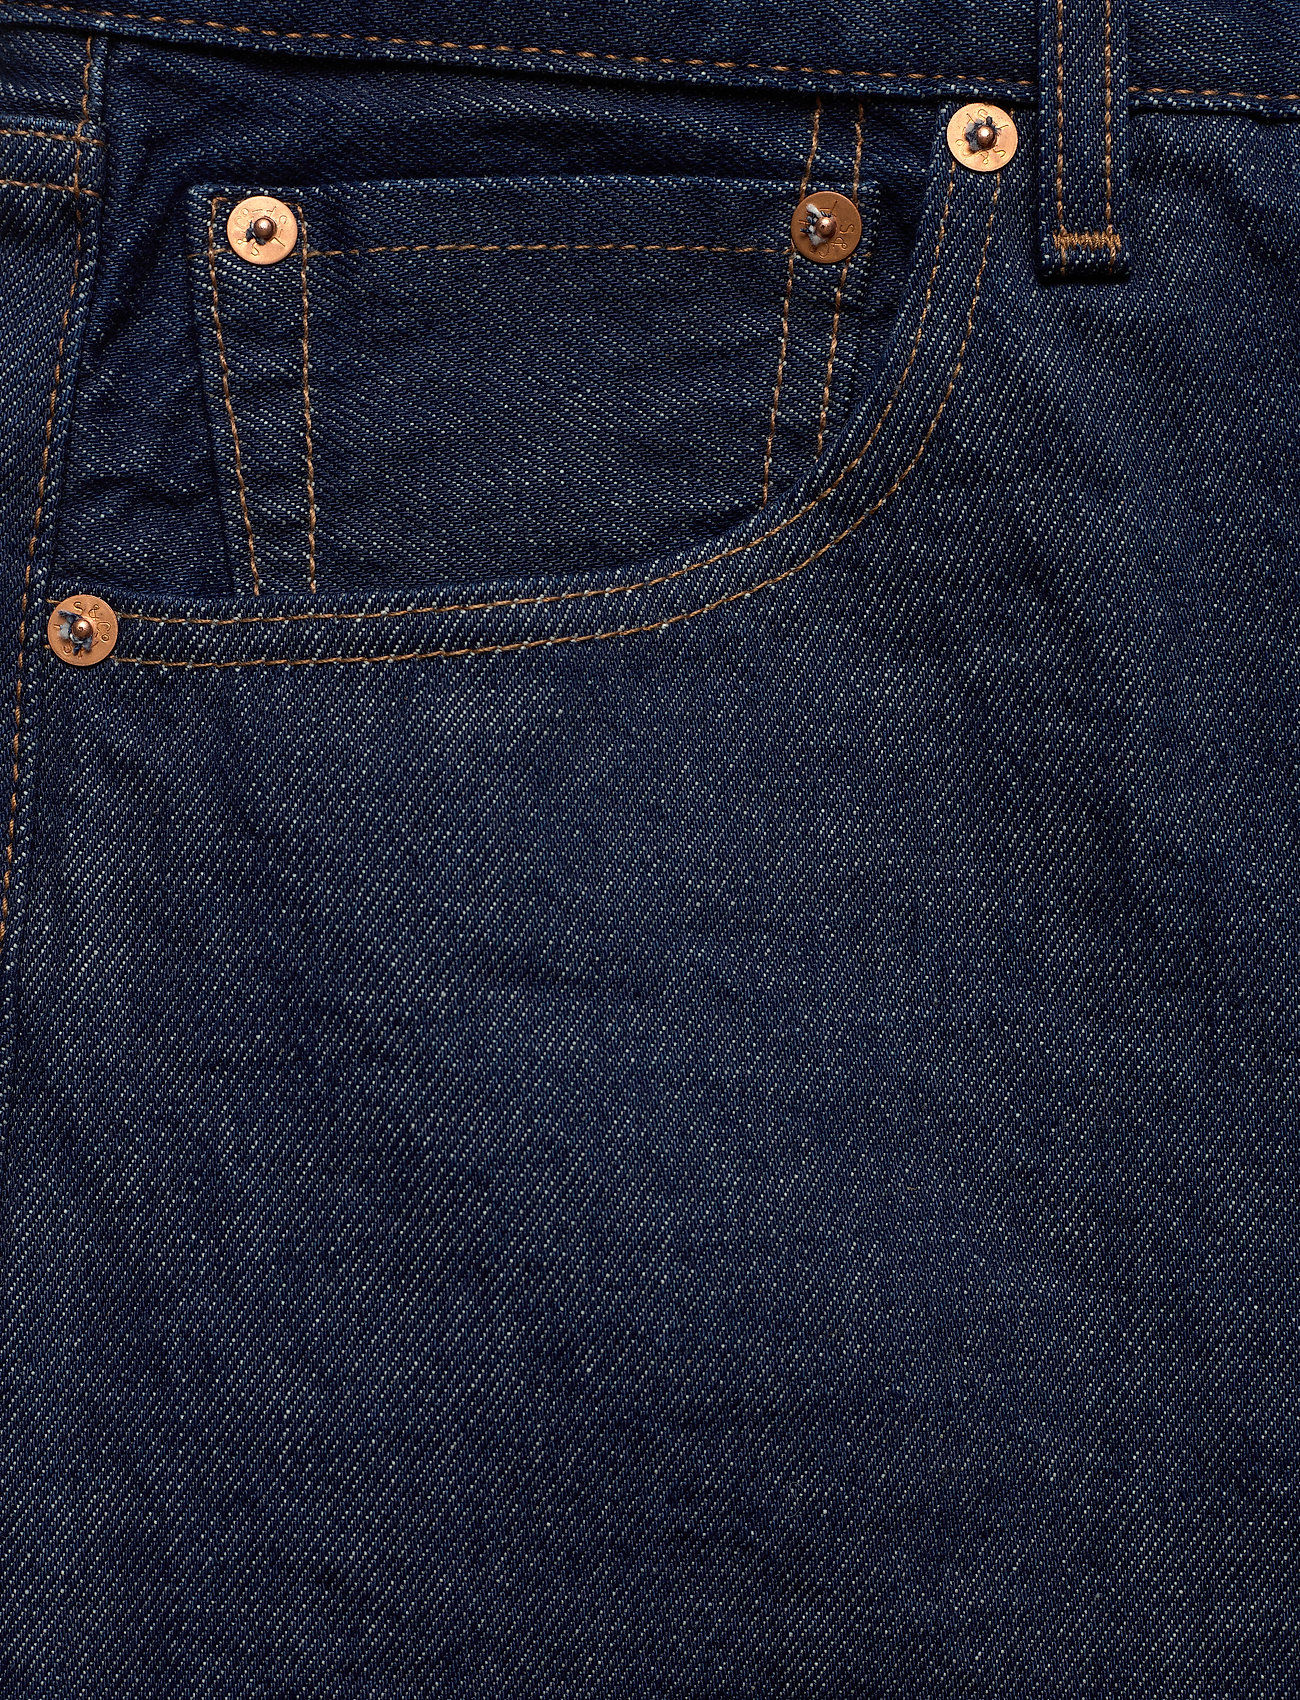 Levi's Made & Crafted 501 93 STRAIGHT LMC EVEREST - Jeans DARK INDIGO - FLAT FINISH - Menn Klær